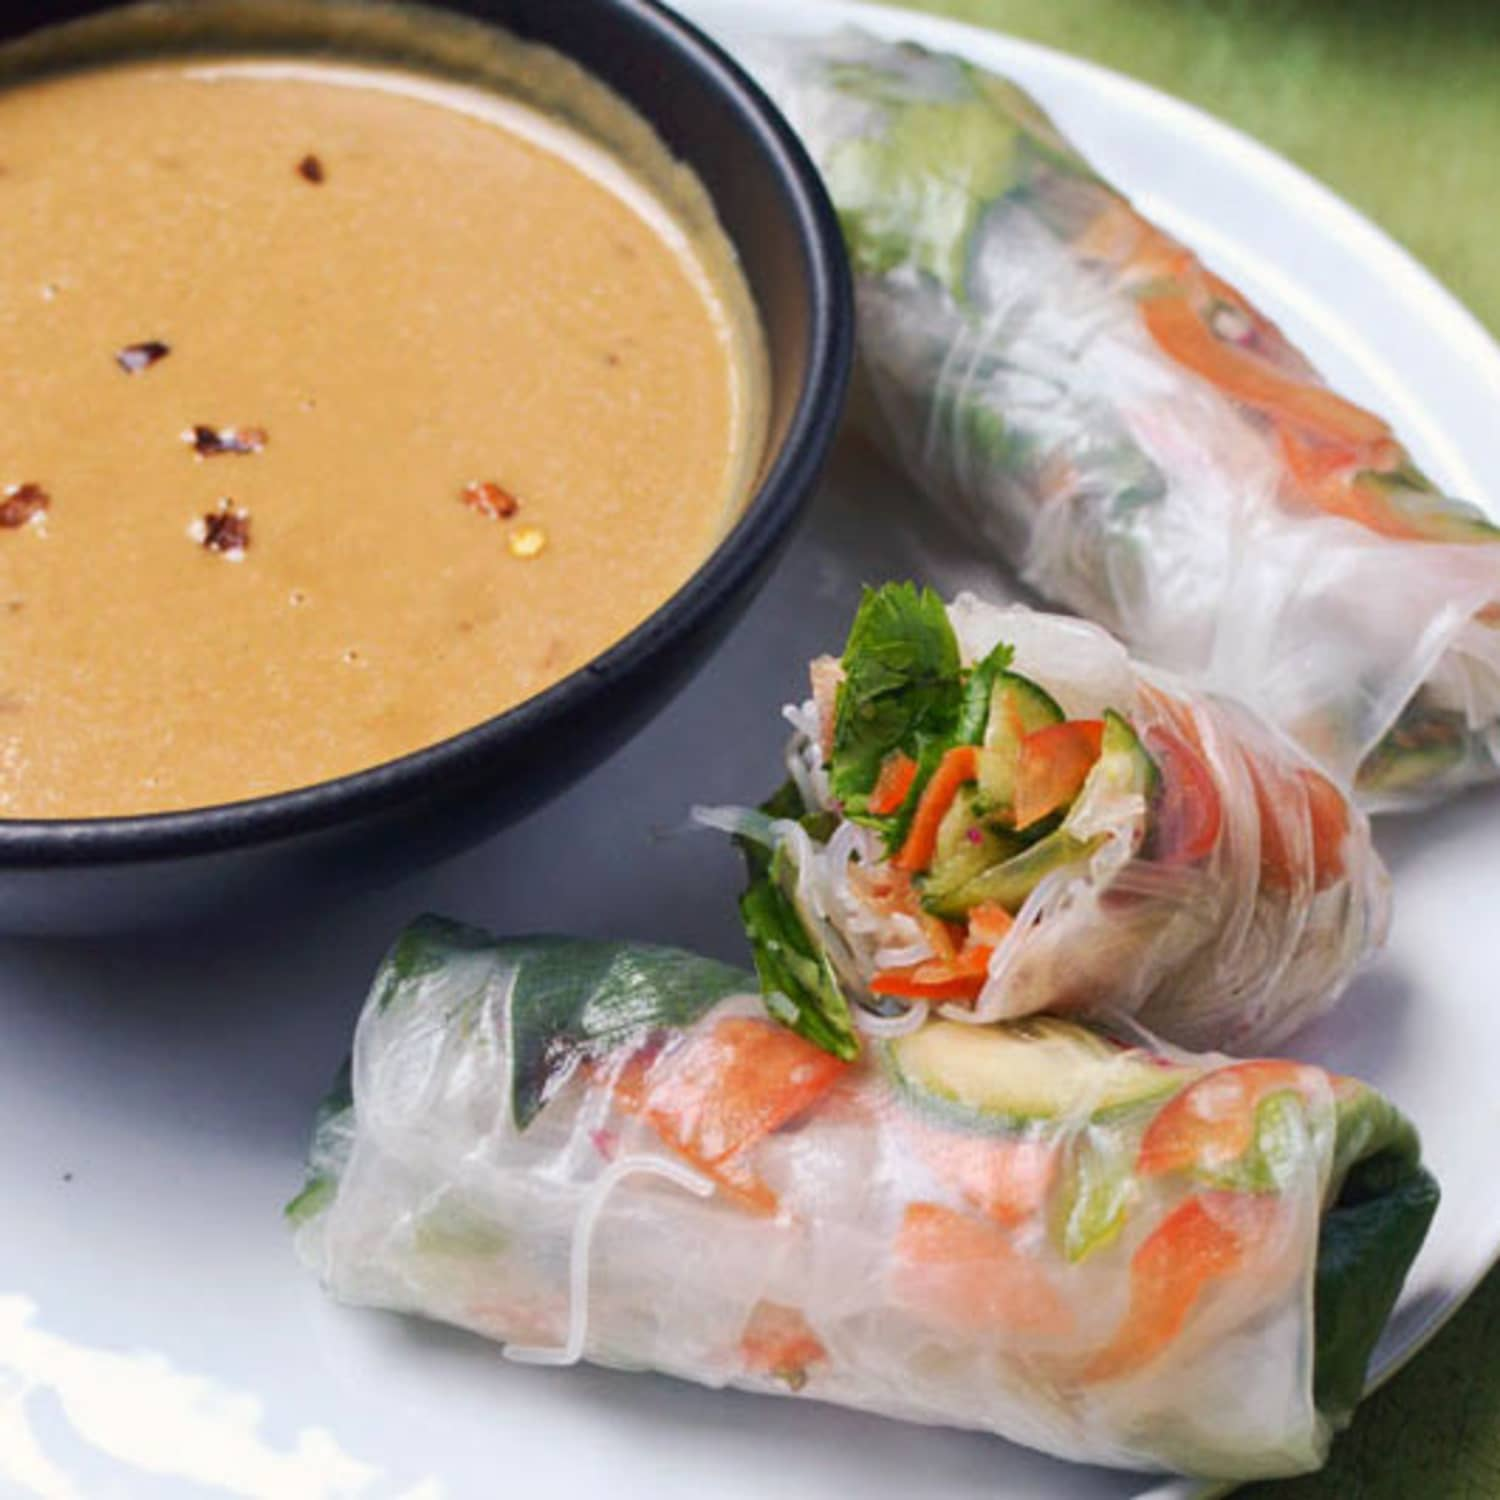 How To Make Vietnamese Spring Rolls Summer Rolls With Spicy Peanut Sauce Kitchn